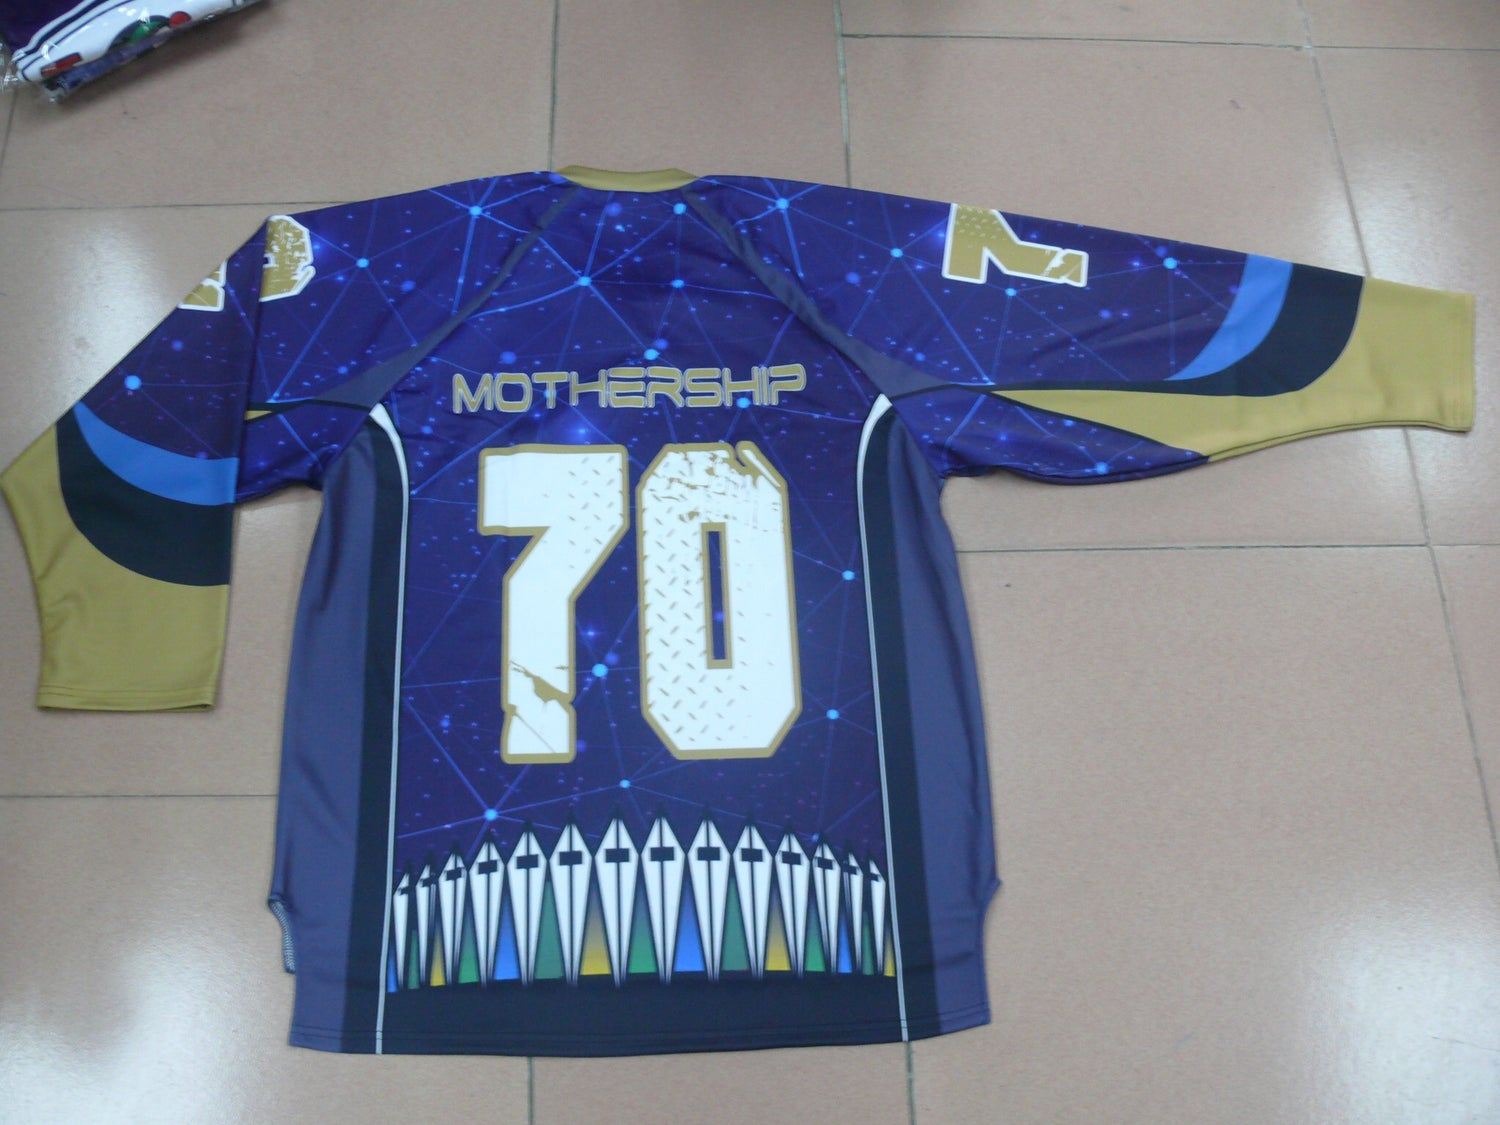 Image of THE MOTHERSHIP limited edition HAMPTON COLISEUM jerseys